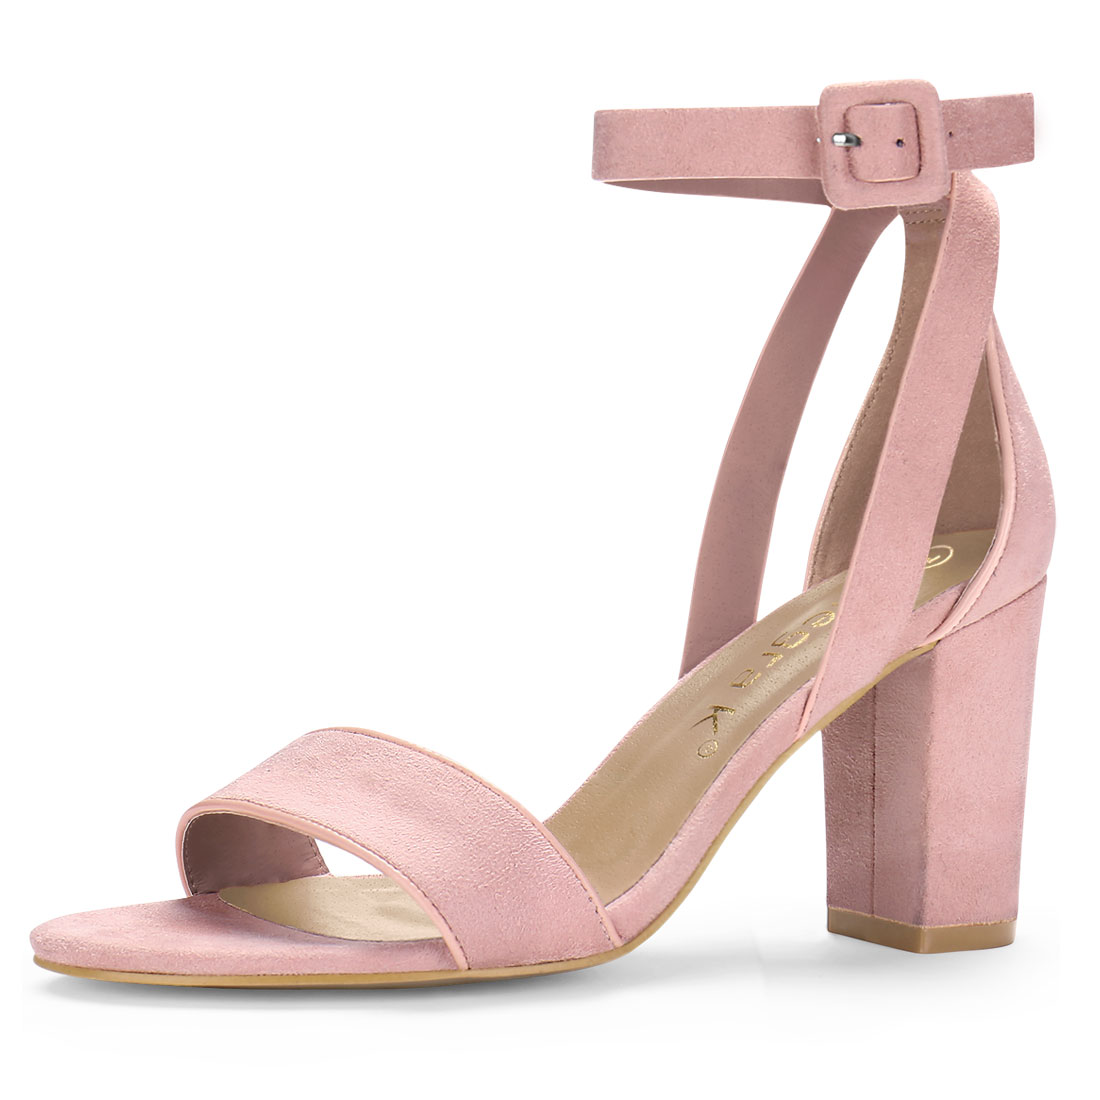 Women PU Panel Piped Chunky Heel Ankle Strap Sandals Light Pink US 9